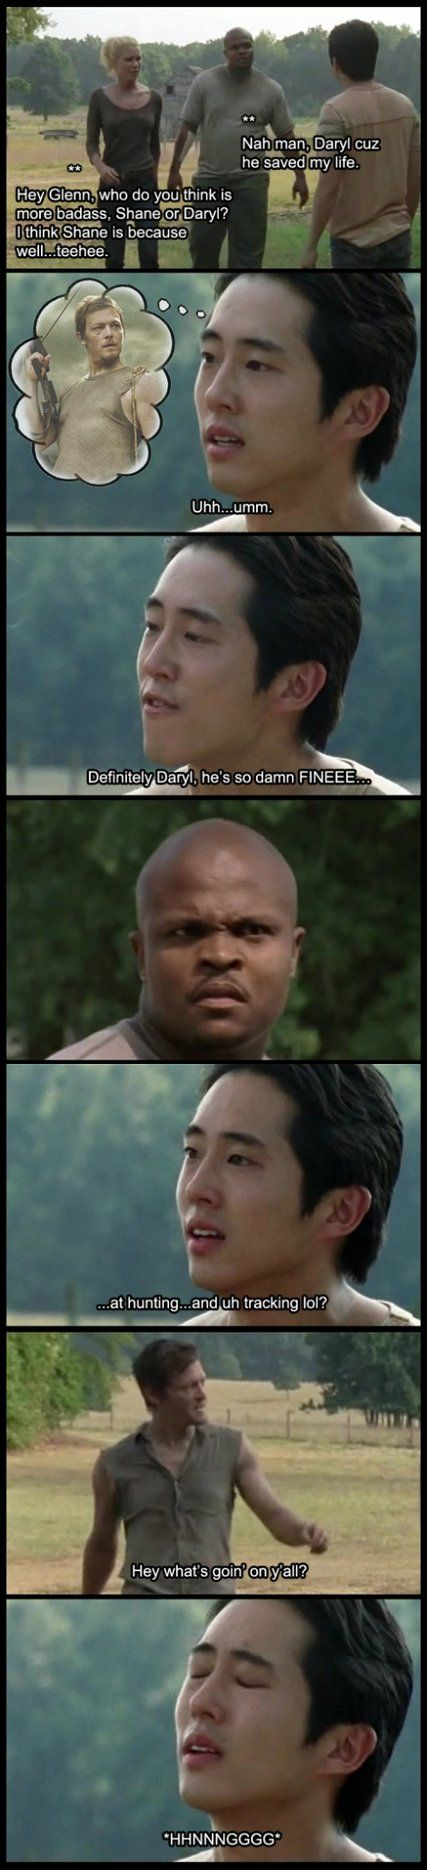 The Best of The Walking Dead Memes